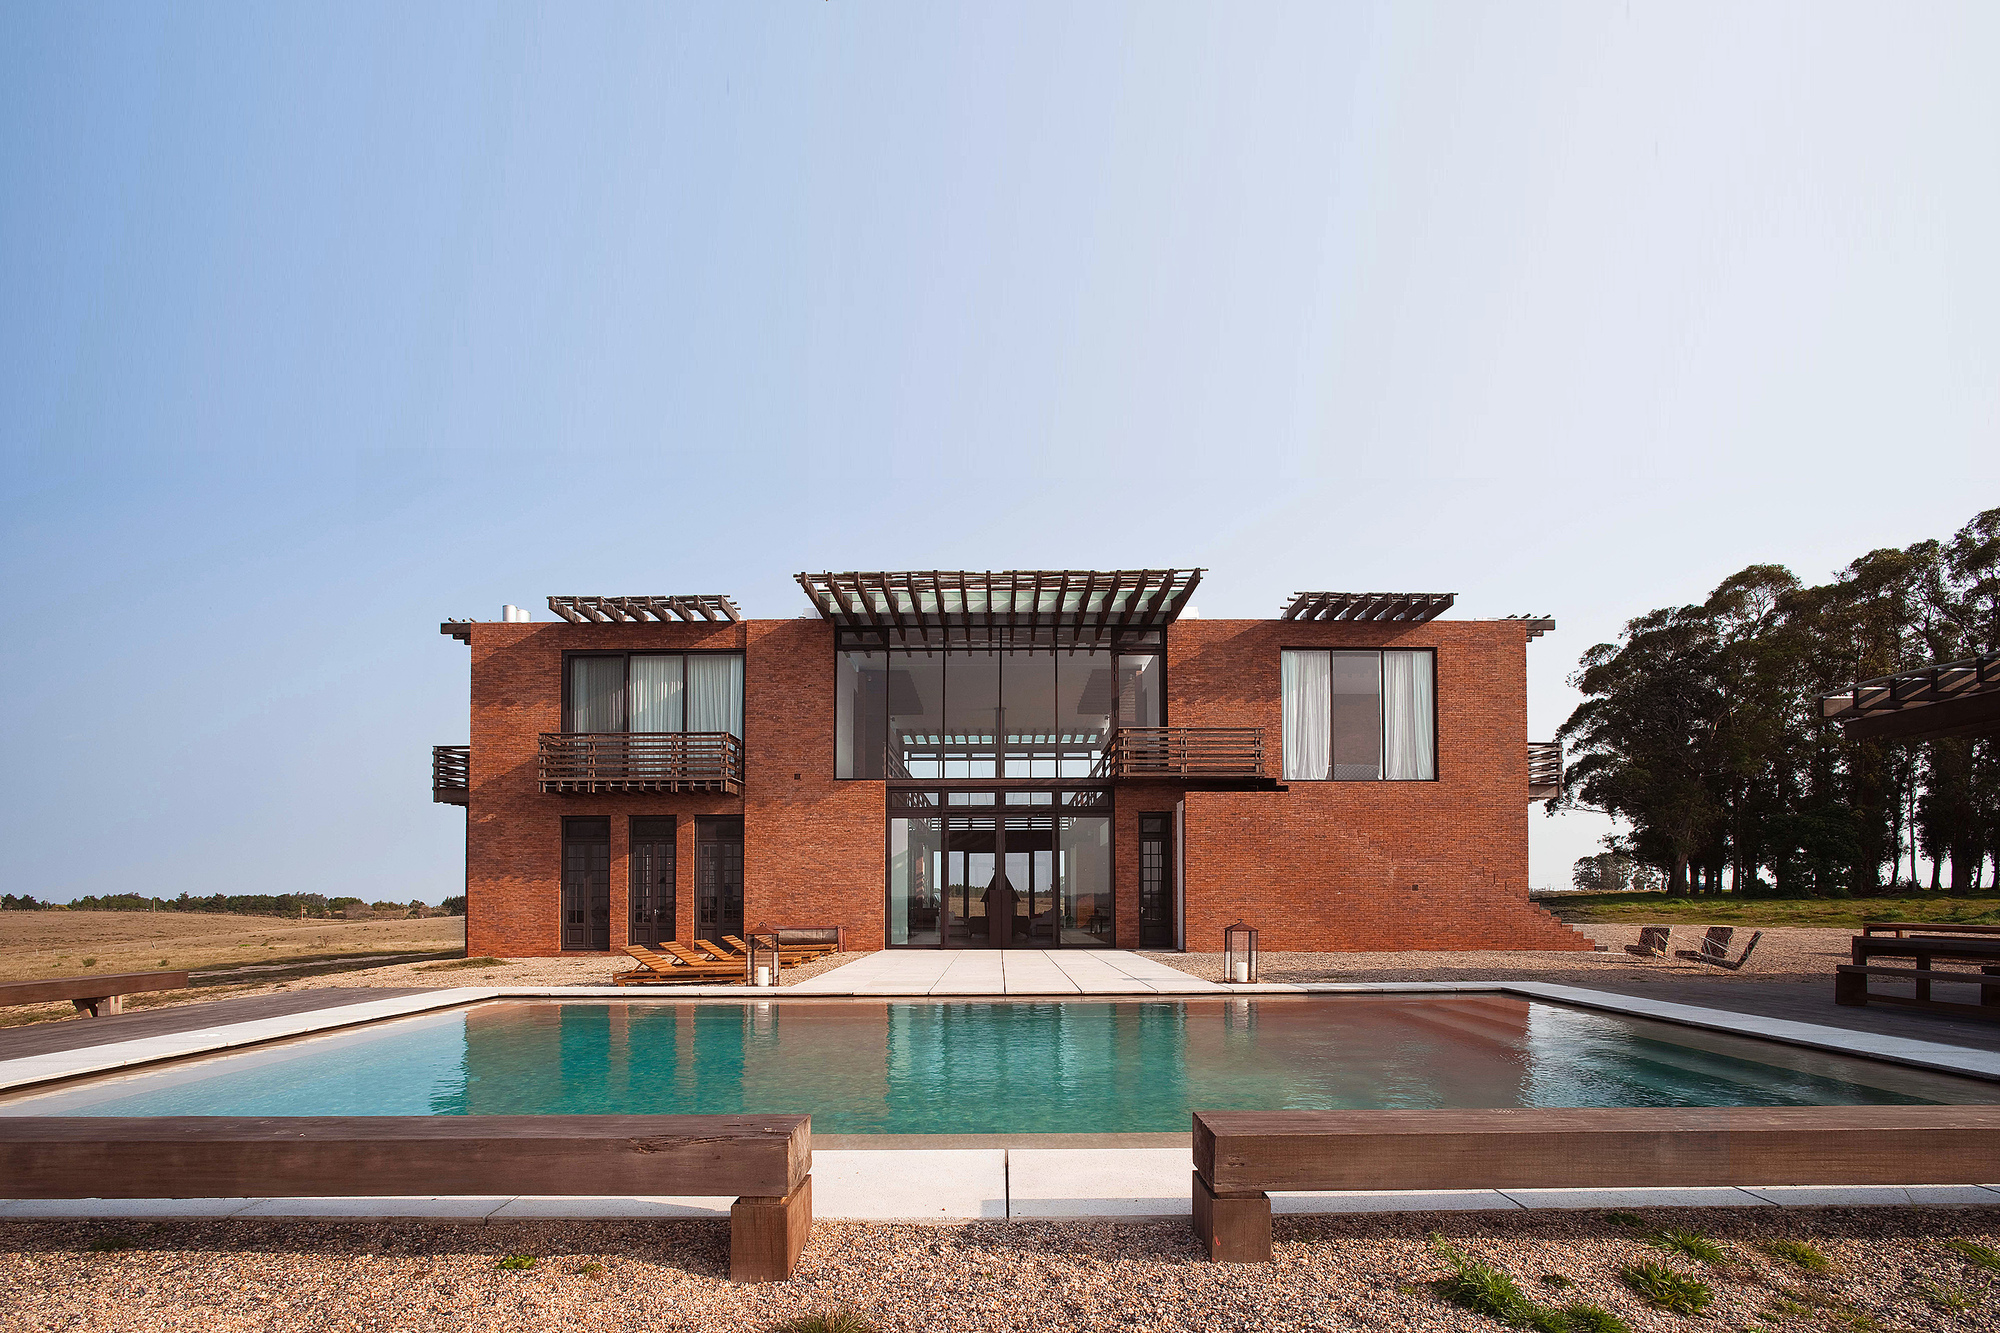 Gallery of luna llena house candida tabet arquitetura 6 - Residence secondaire candida tabet architecture ...